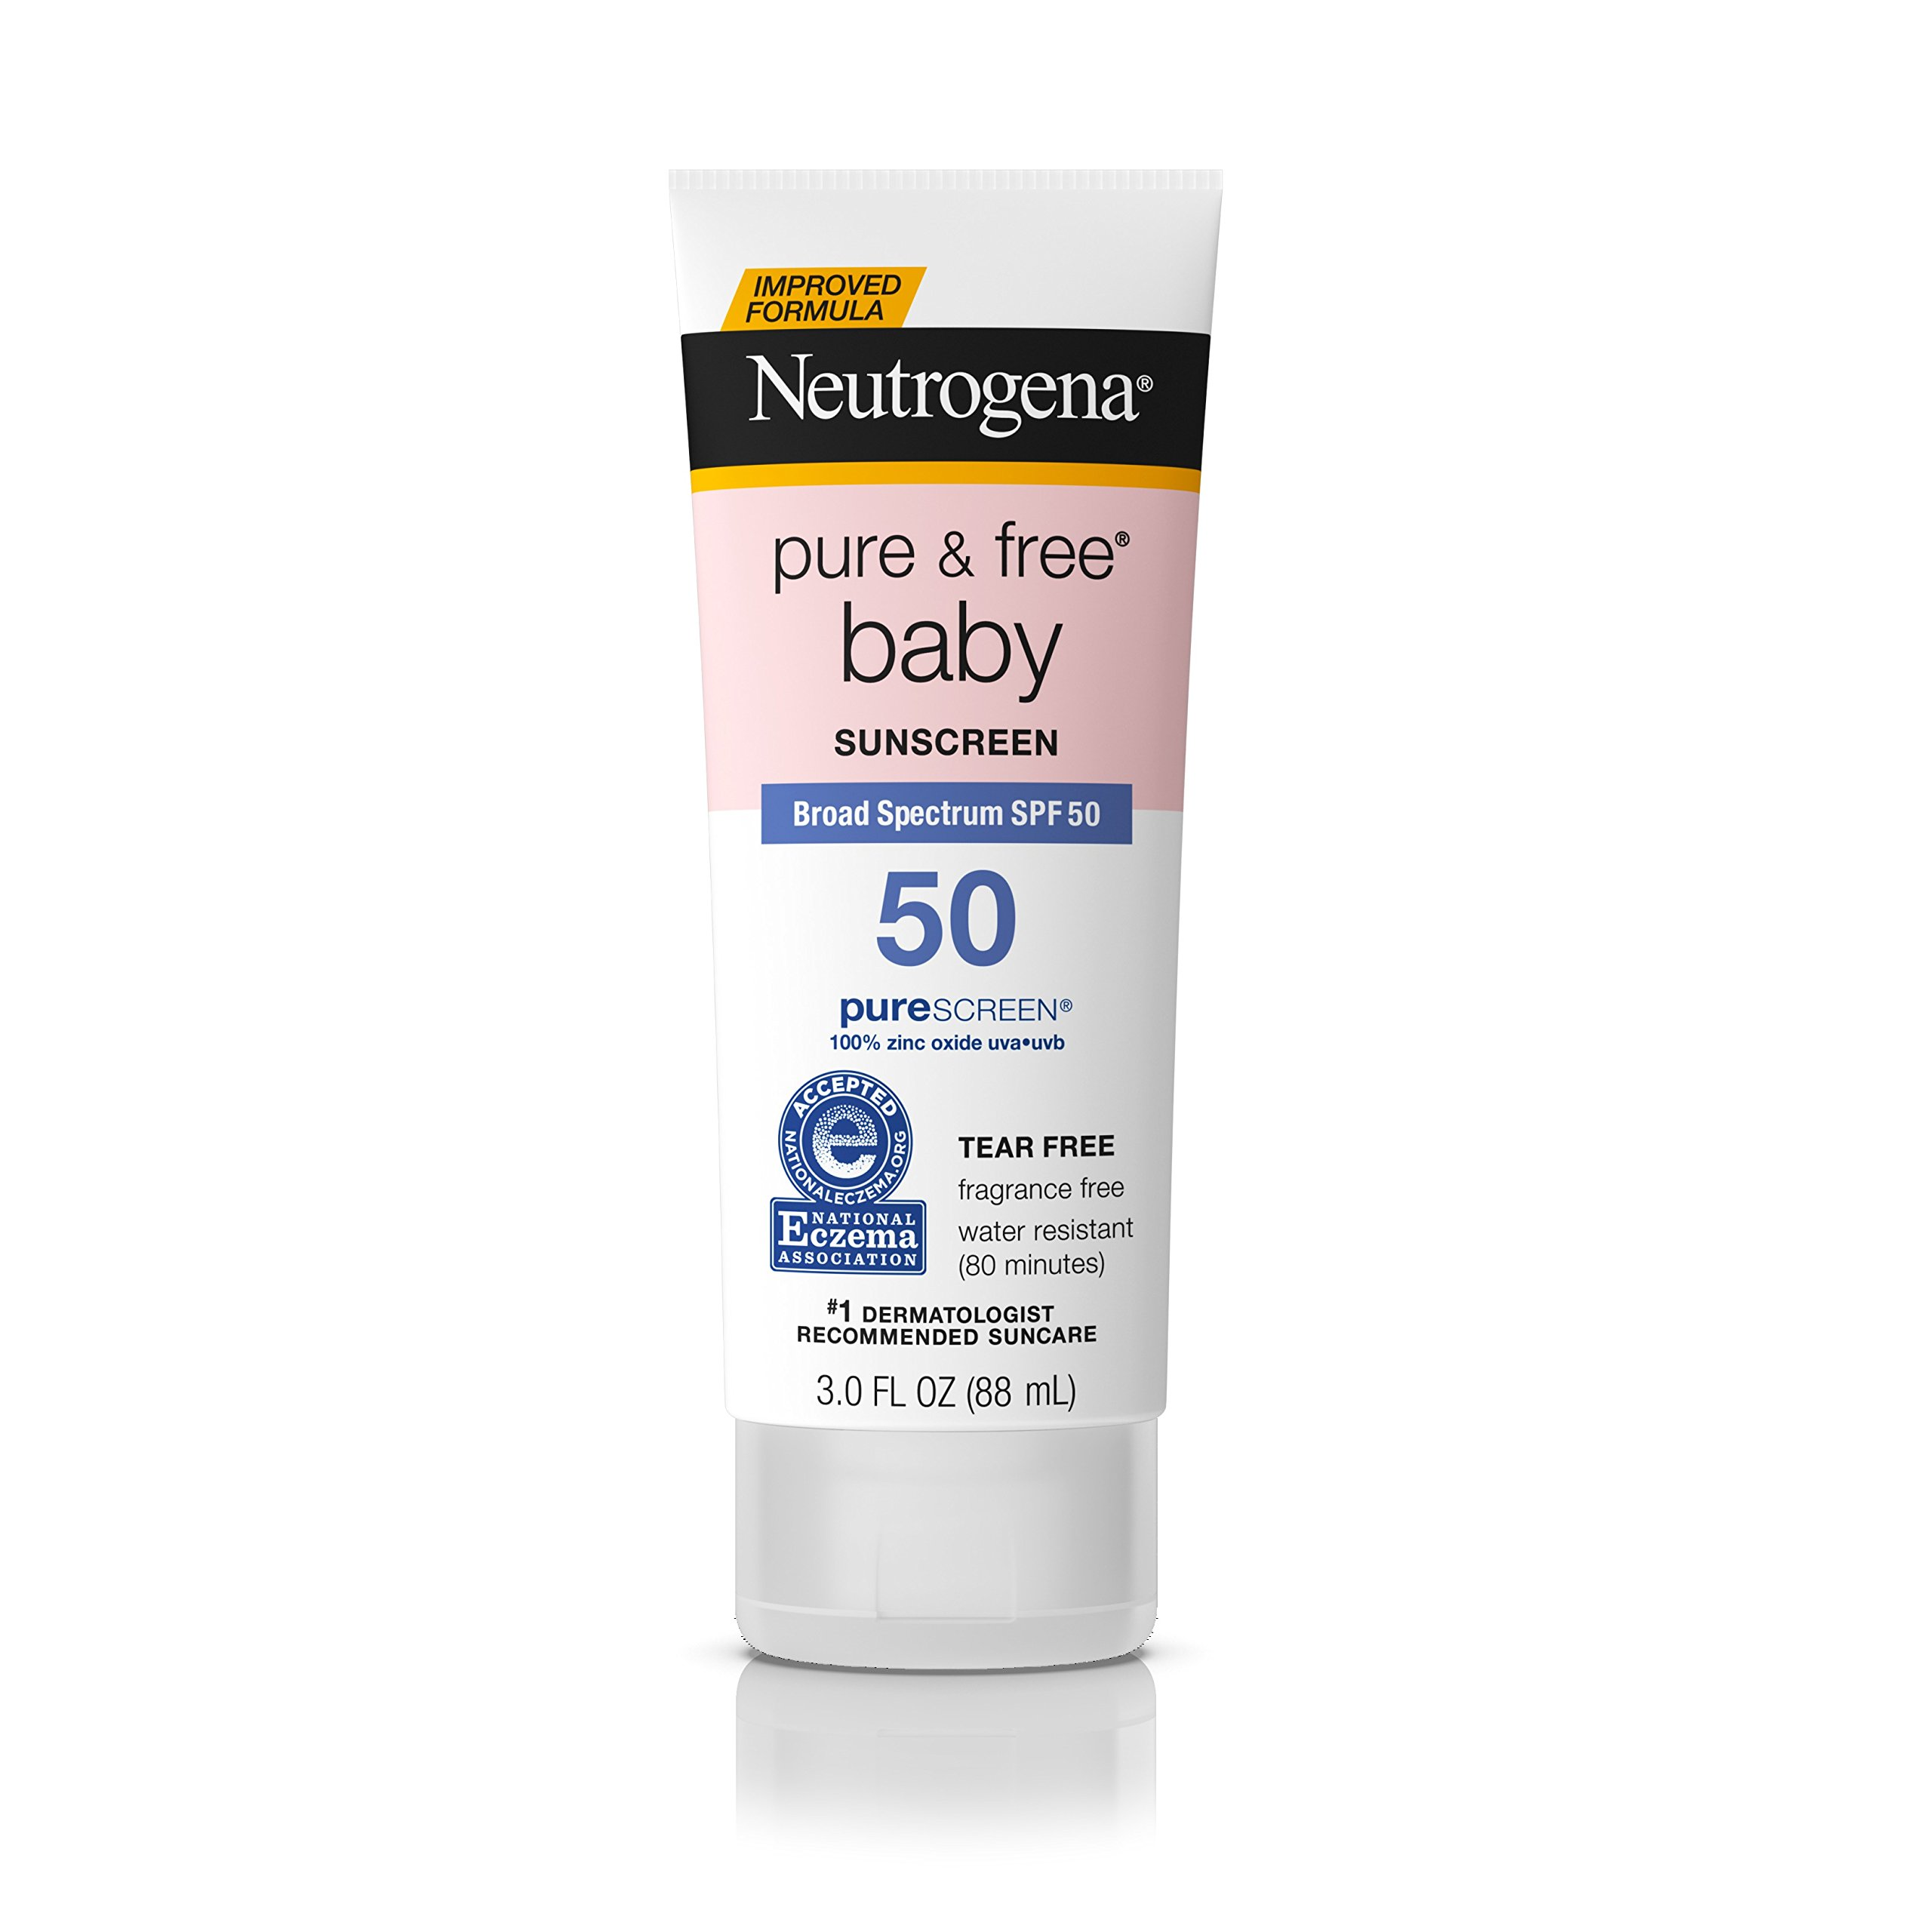 Neutrogena Pure & Free Baby Mineral Sunscreen Lotion with Broad Spectrum SPF 50 & Zinc Oxide, Water-Resistant, Hypoallergenic & Tear-Free Baby Sunscreen, 3 fl. oz by Neutrogena